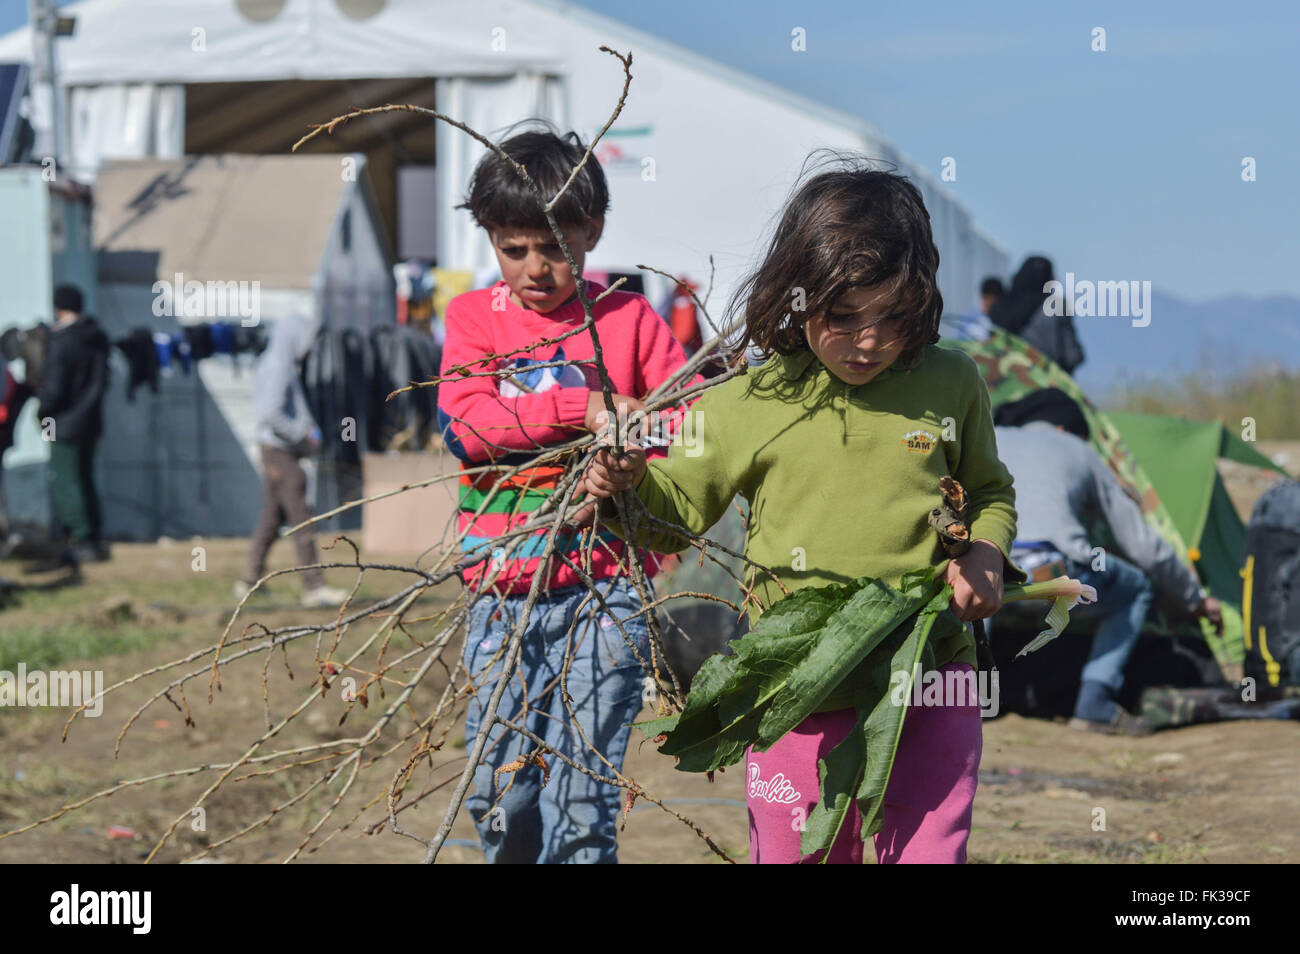 Two refugee children carry wood to light a fire to keep warm. - Stock Image